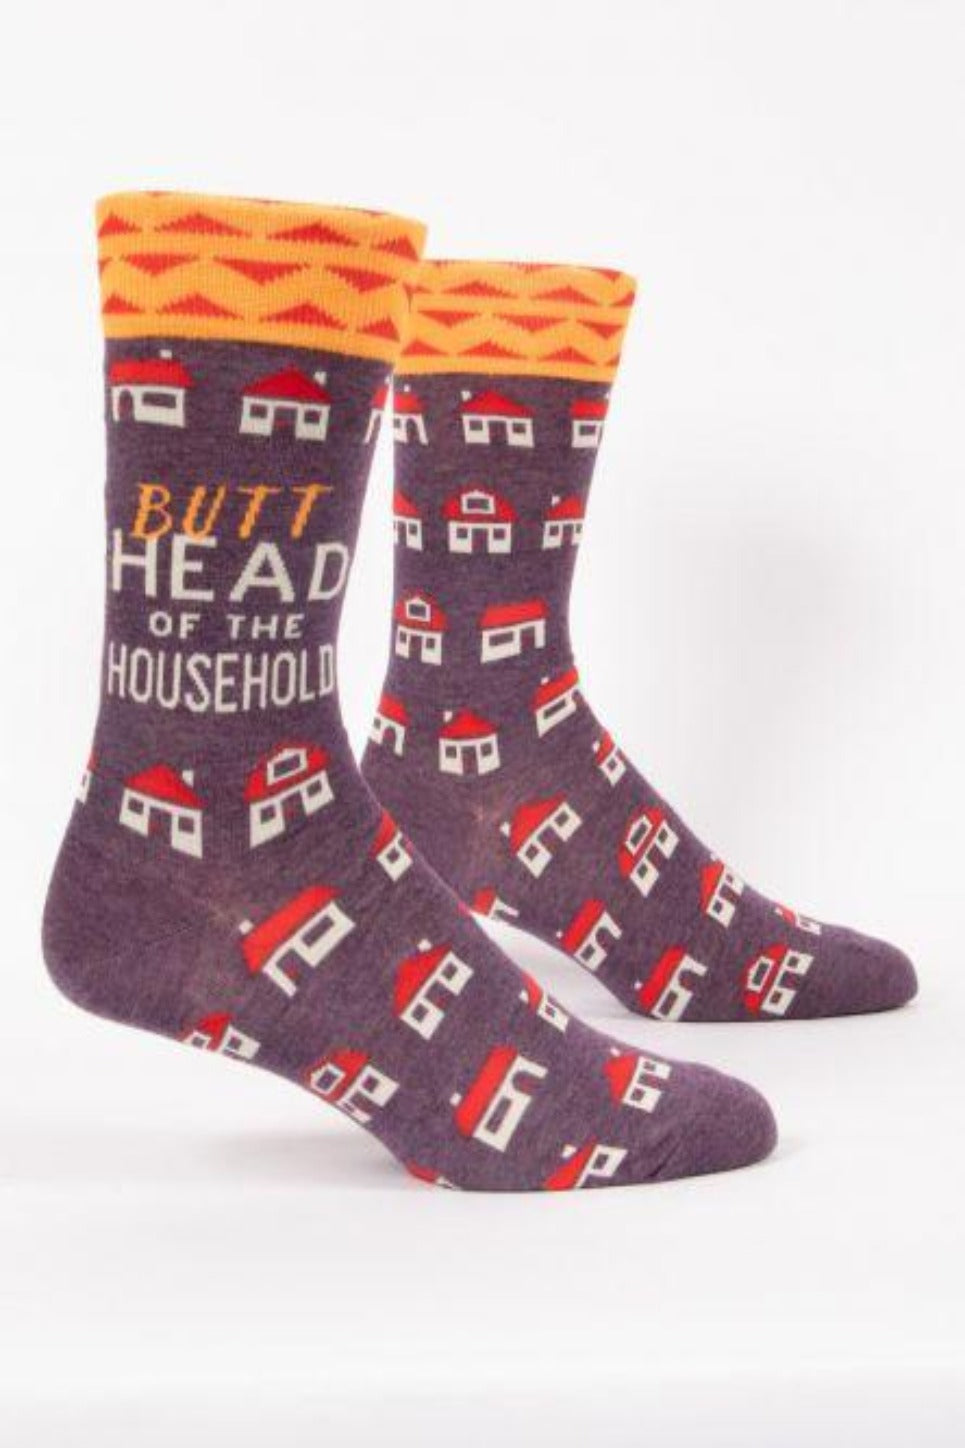 Butthead Household Men's Socks